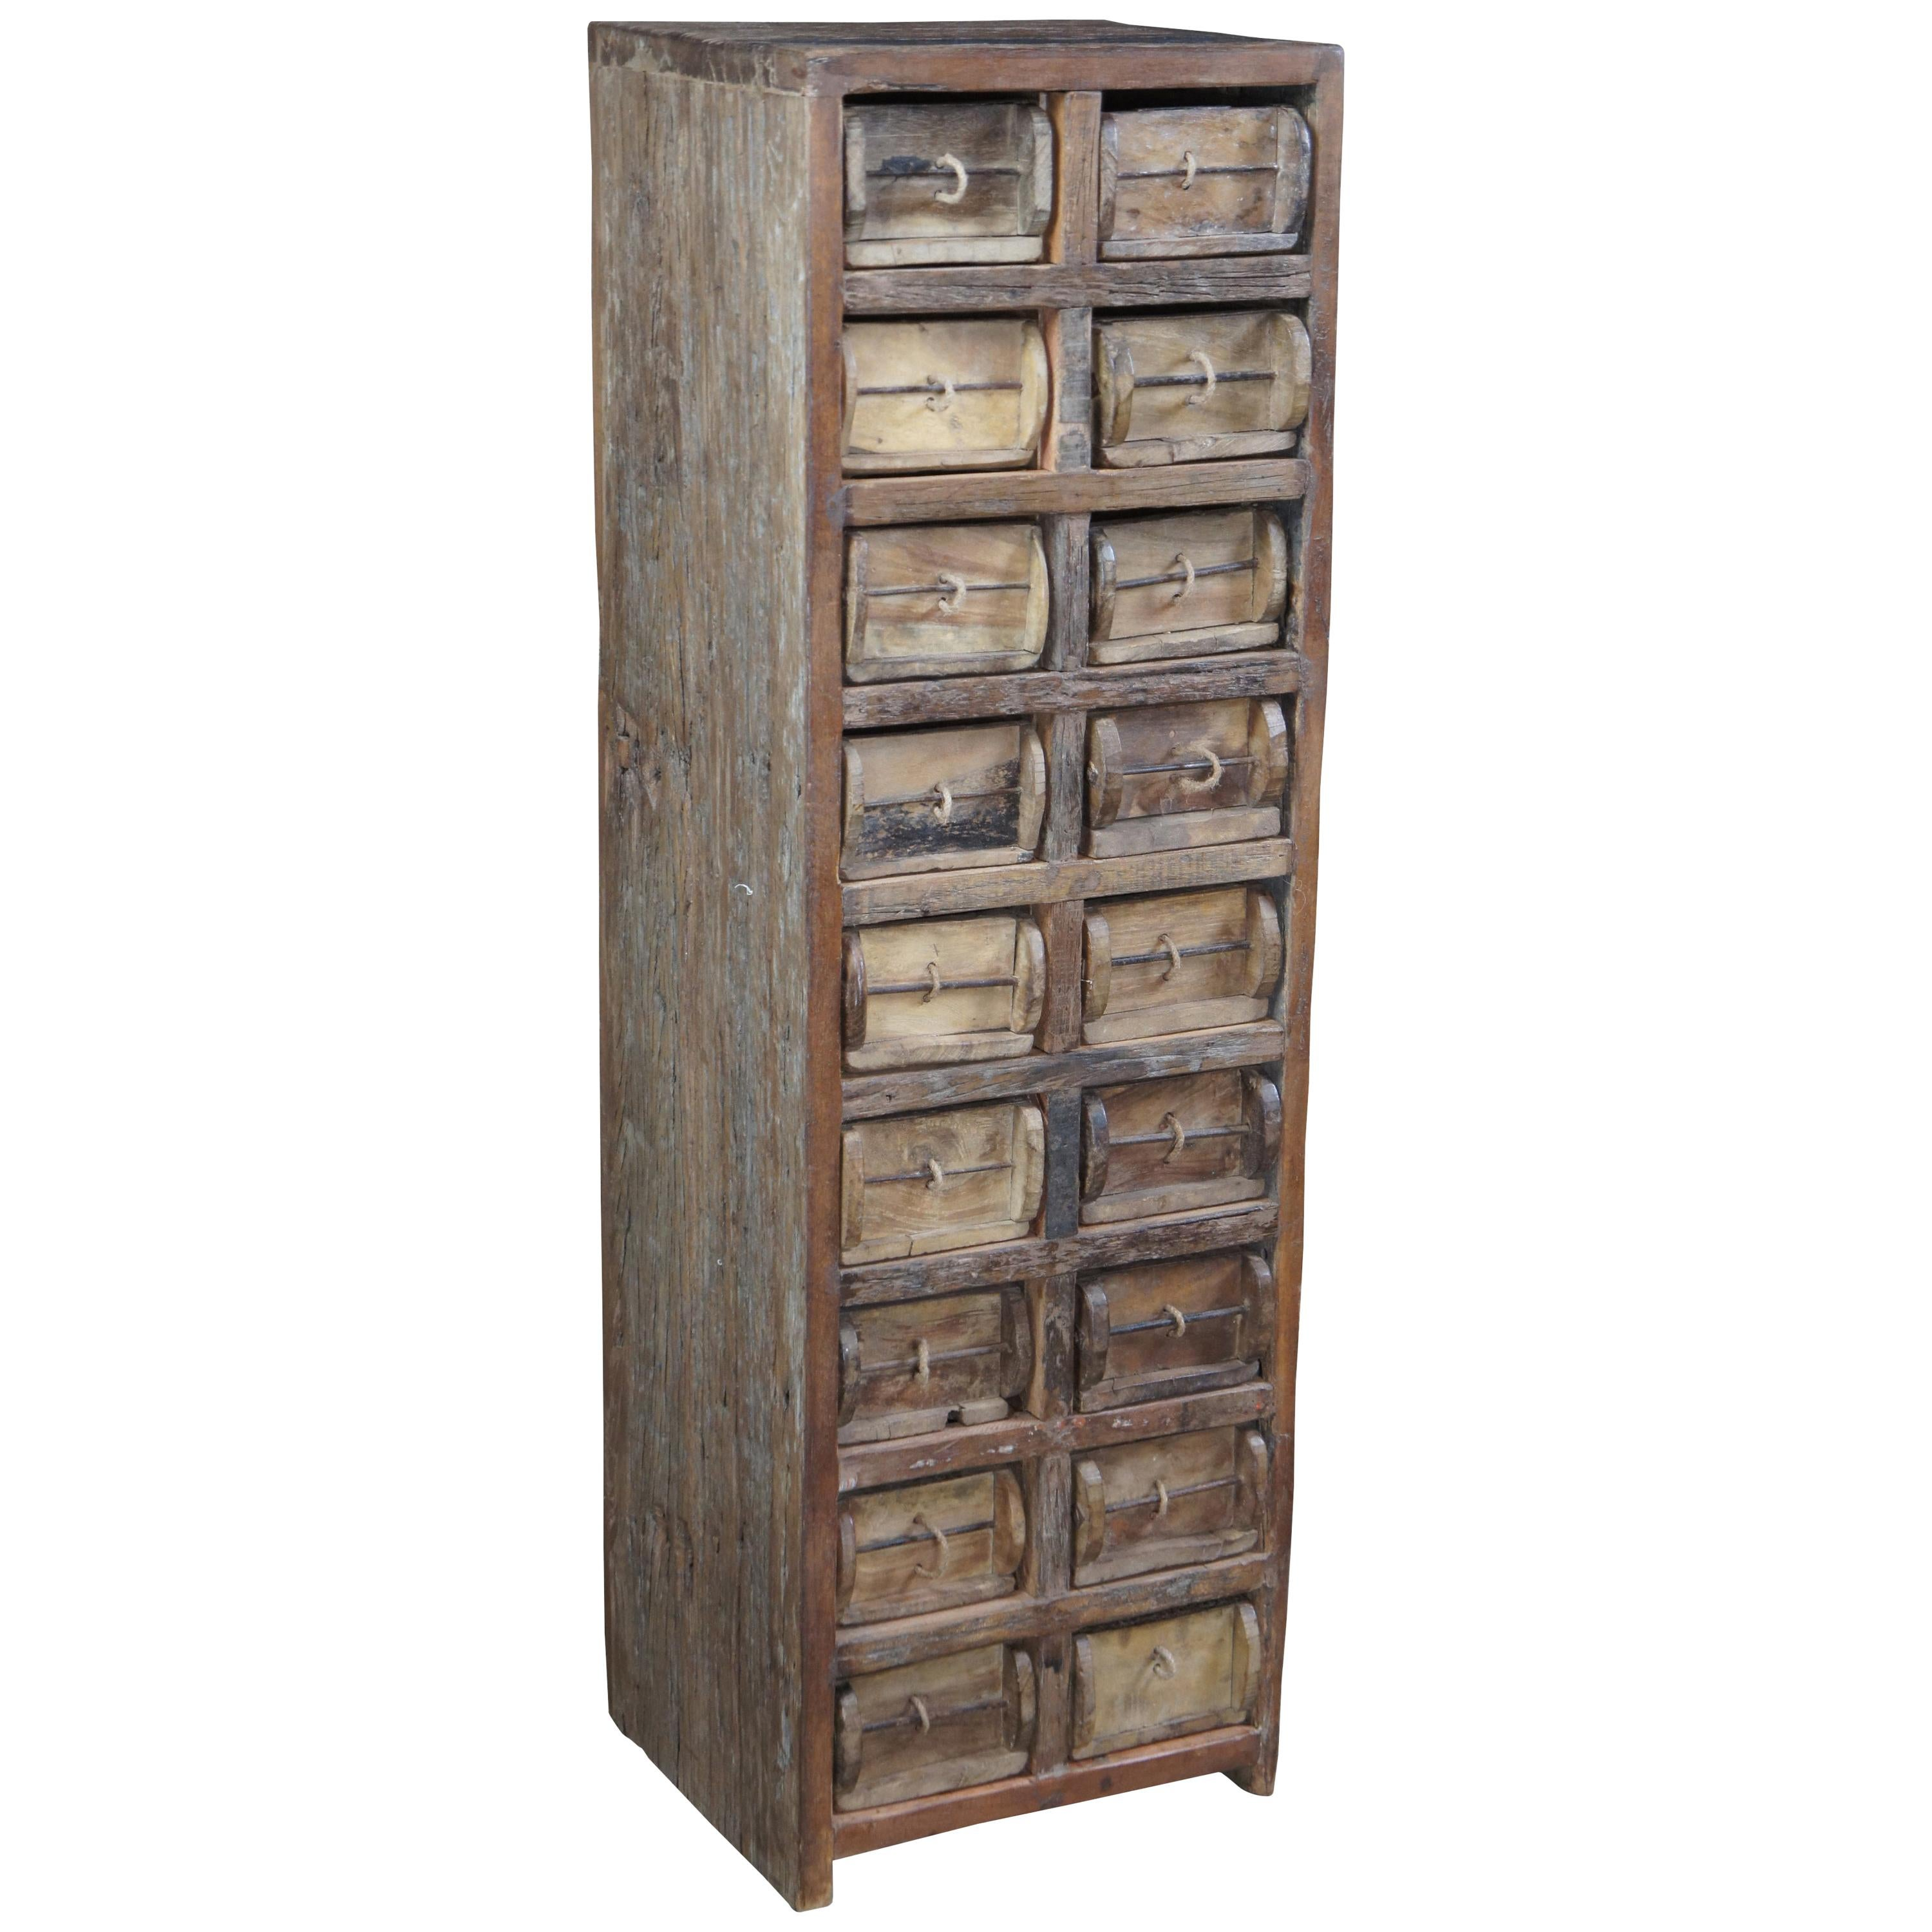 Primitive Hardwood Apothecary Cabinet Hardware Chest File Tool Drawer Pharmacy